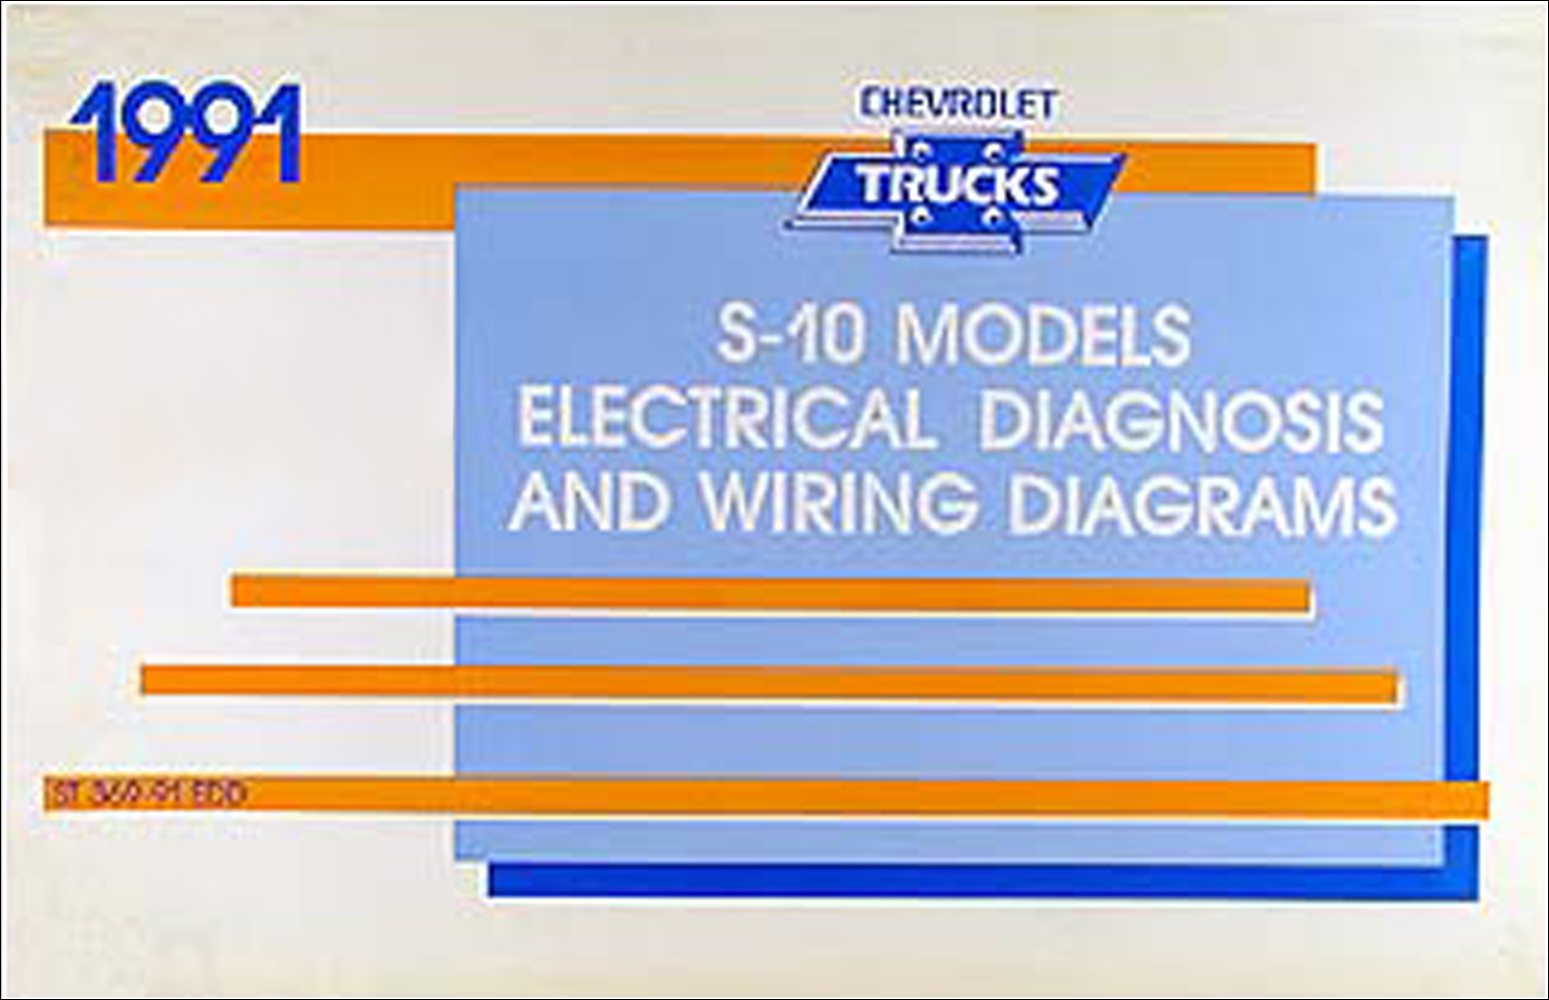 1991 chevy s 10 wiring diagram everything you need to know about rh newsnanalysis co 91 chevy wiring diagram 91 chevy suburban wiring diagram